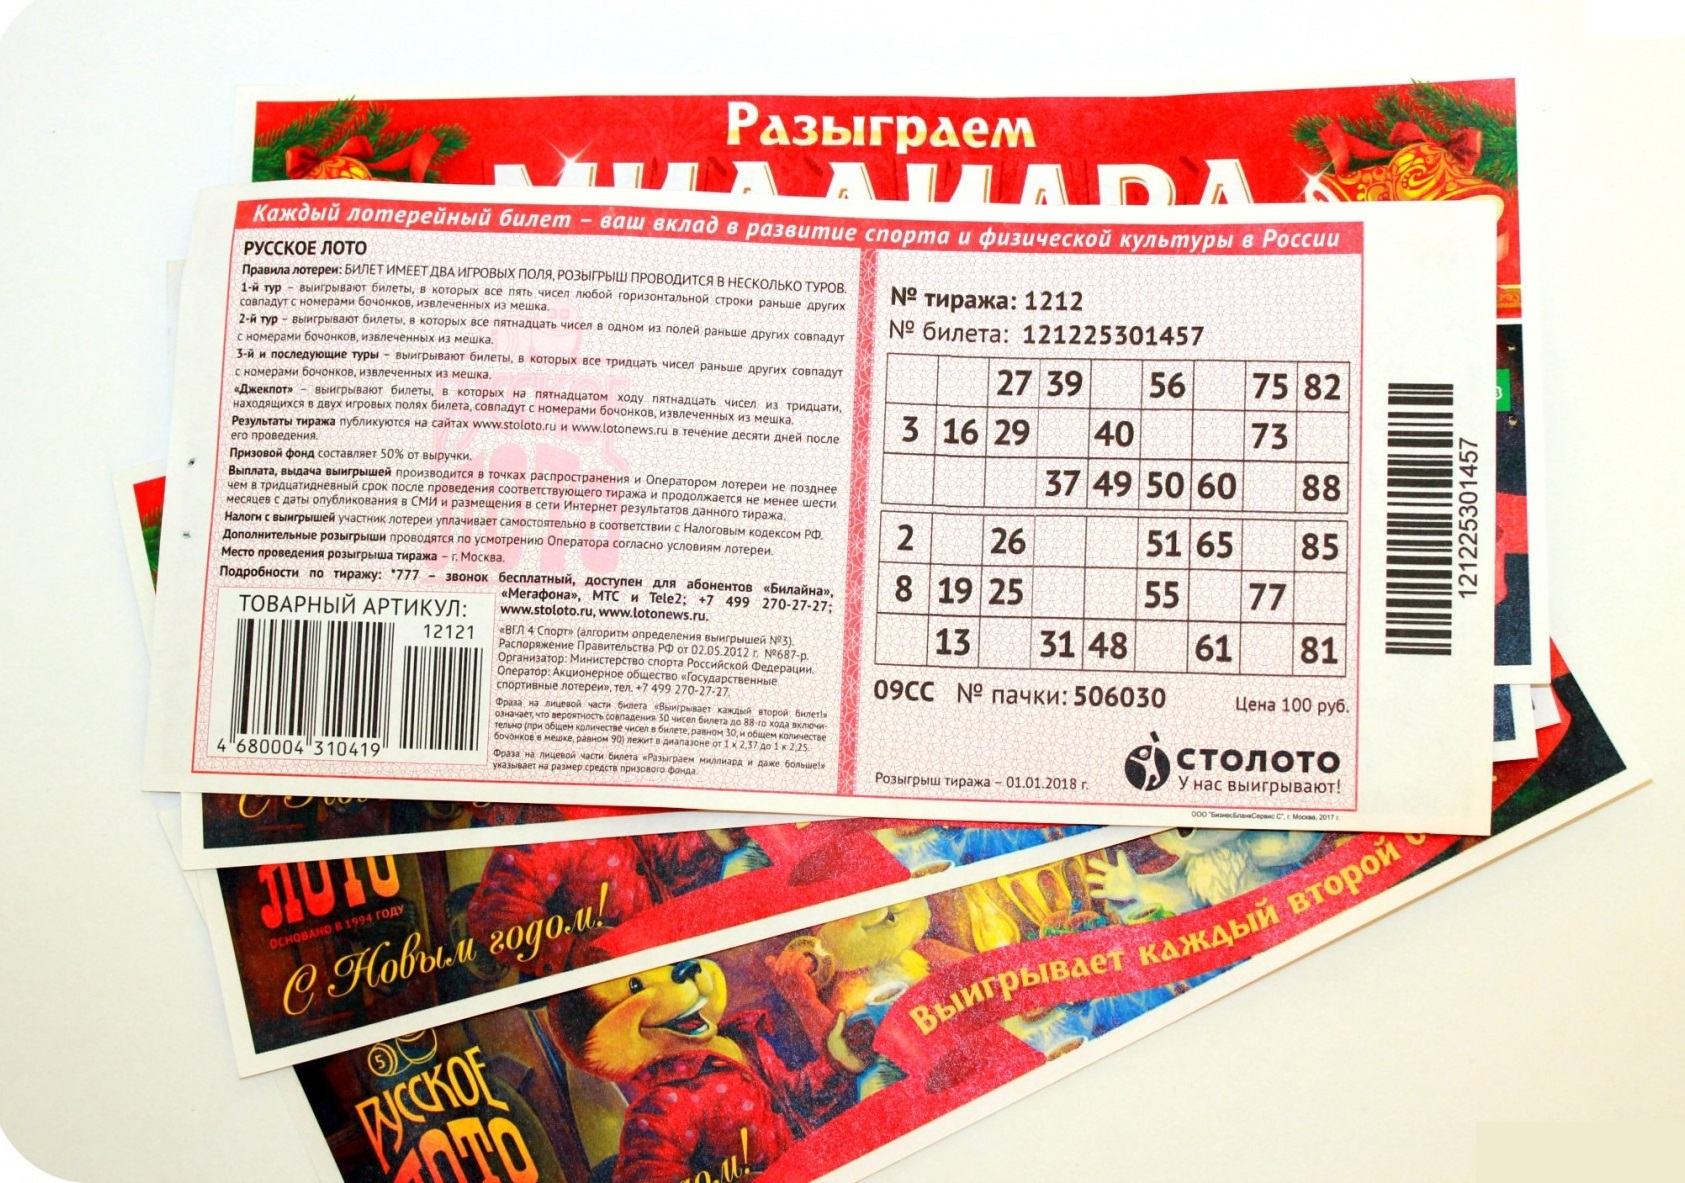 Check lottery ticket online at 1 cry